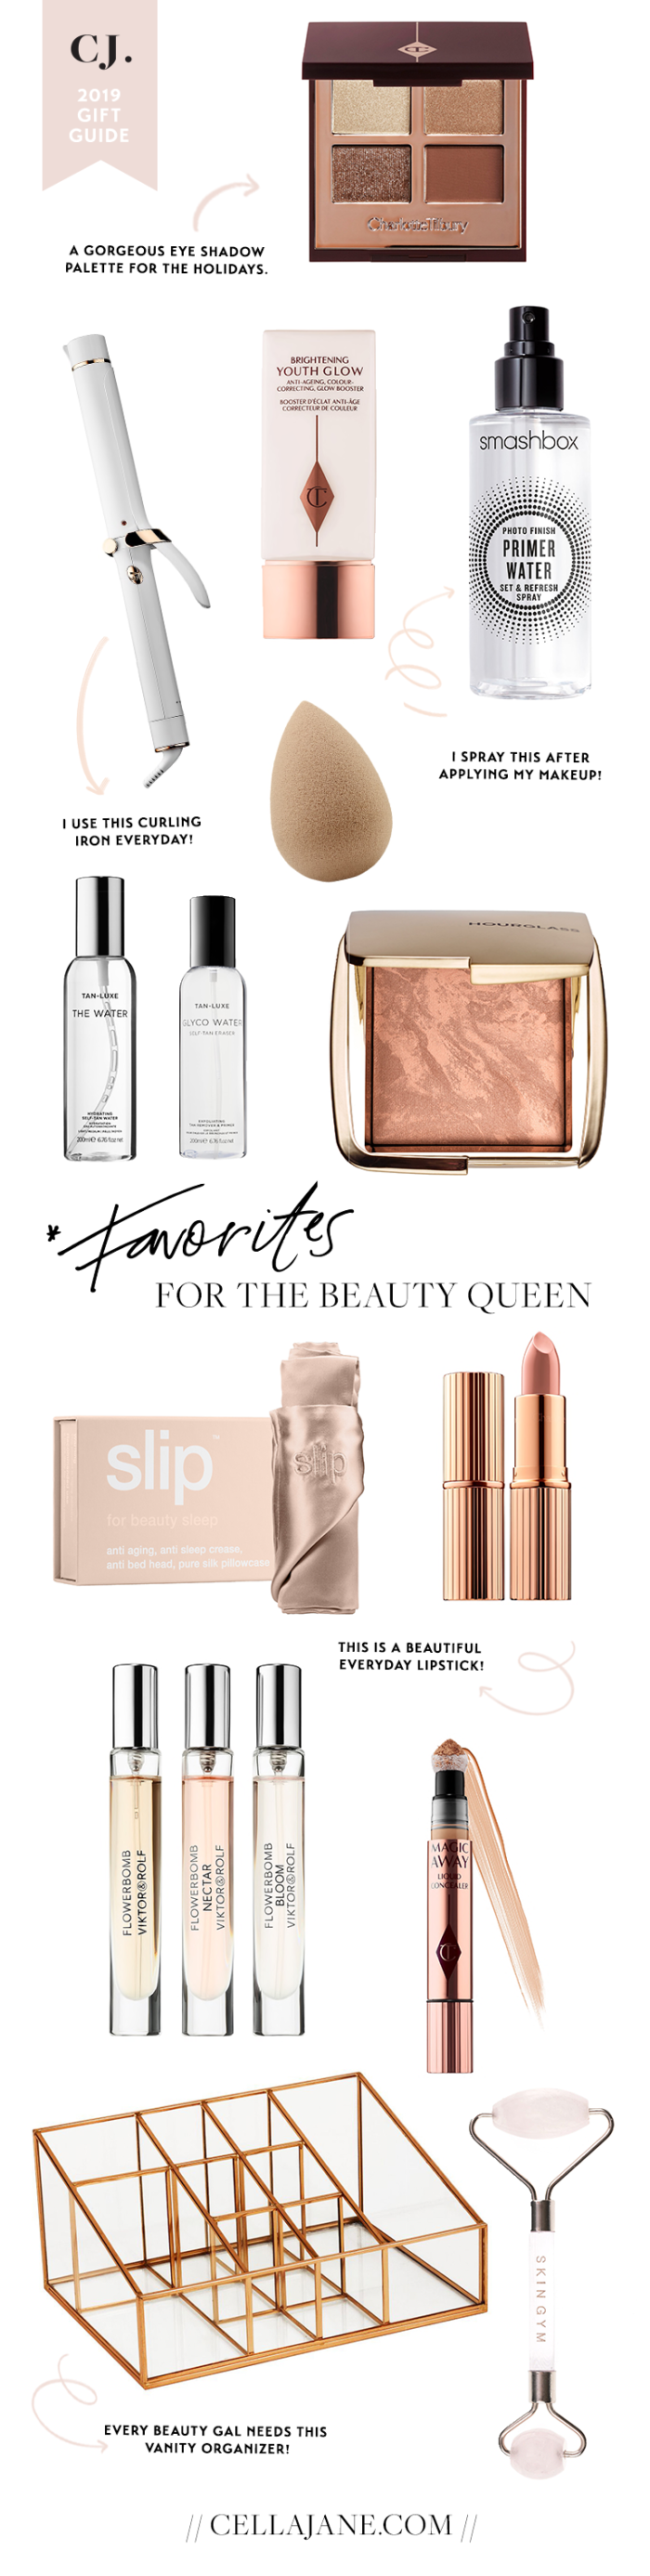 2019 beauty gift guide including beauty gift ideas for her